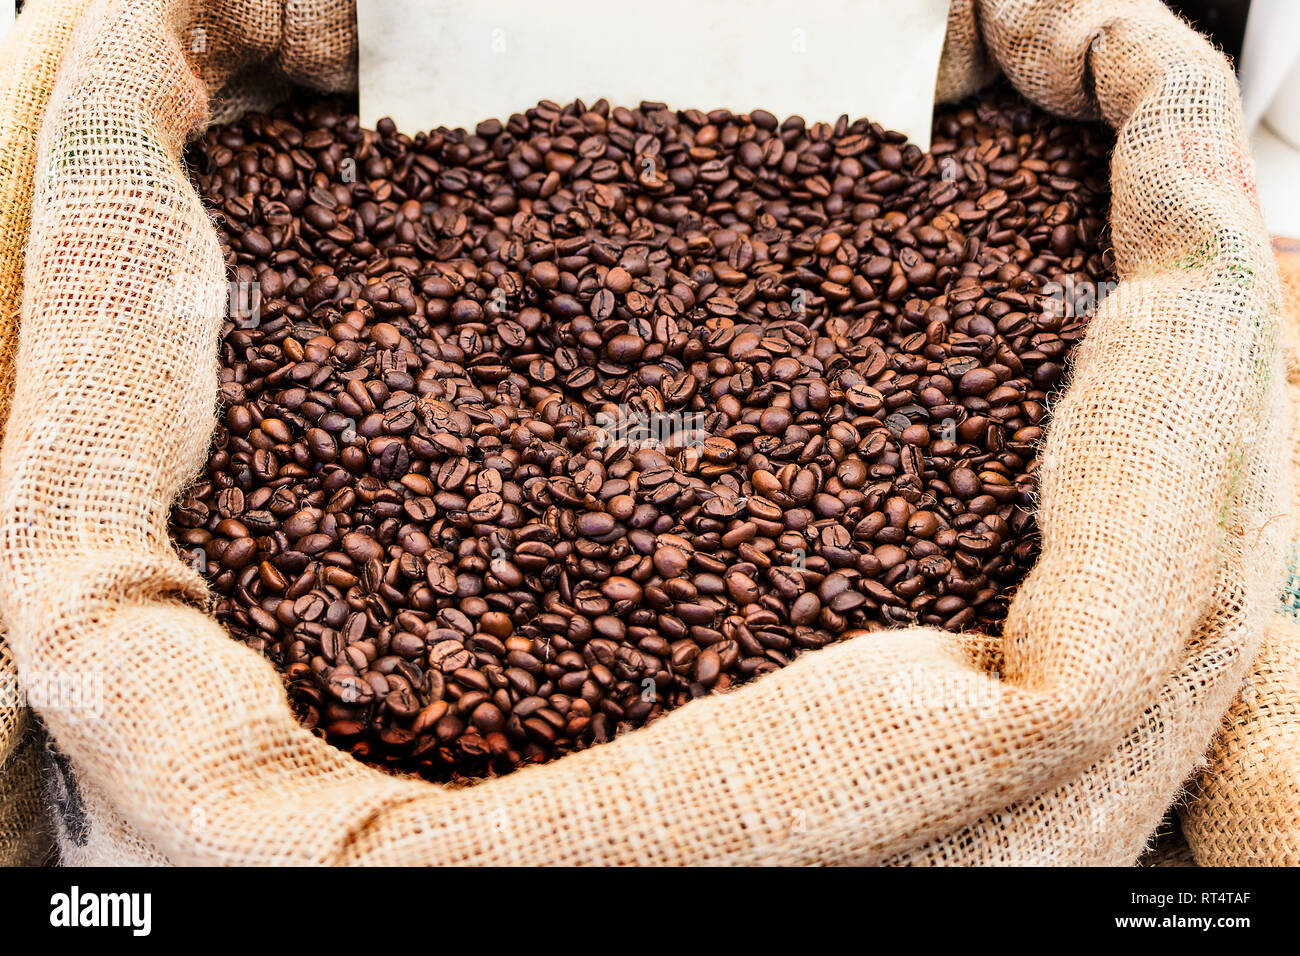 Roasted coffee beans in a bag - Stock Image